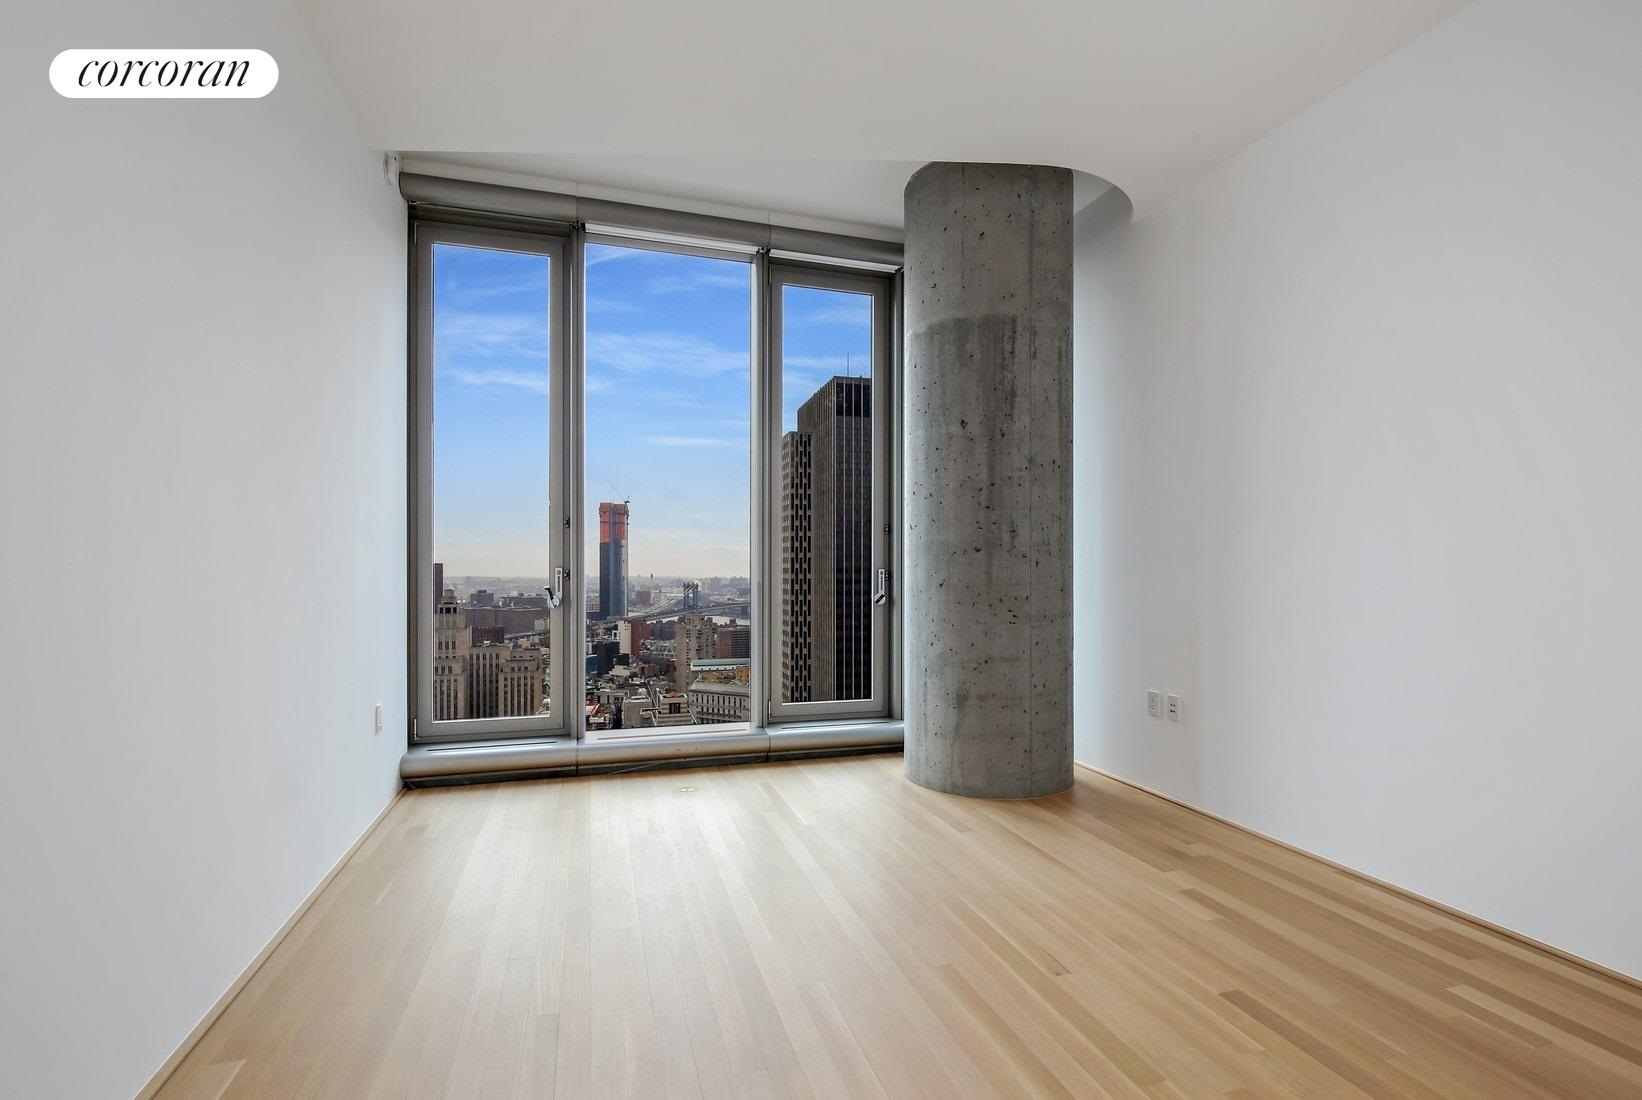 56 LEONARD ST, 34A EAST, Stunning City & River Views from Walls of Windows